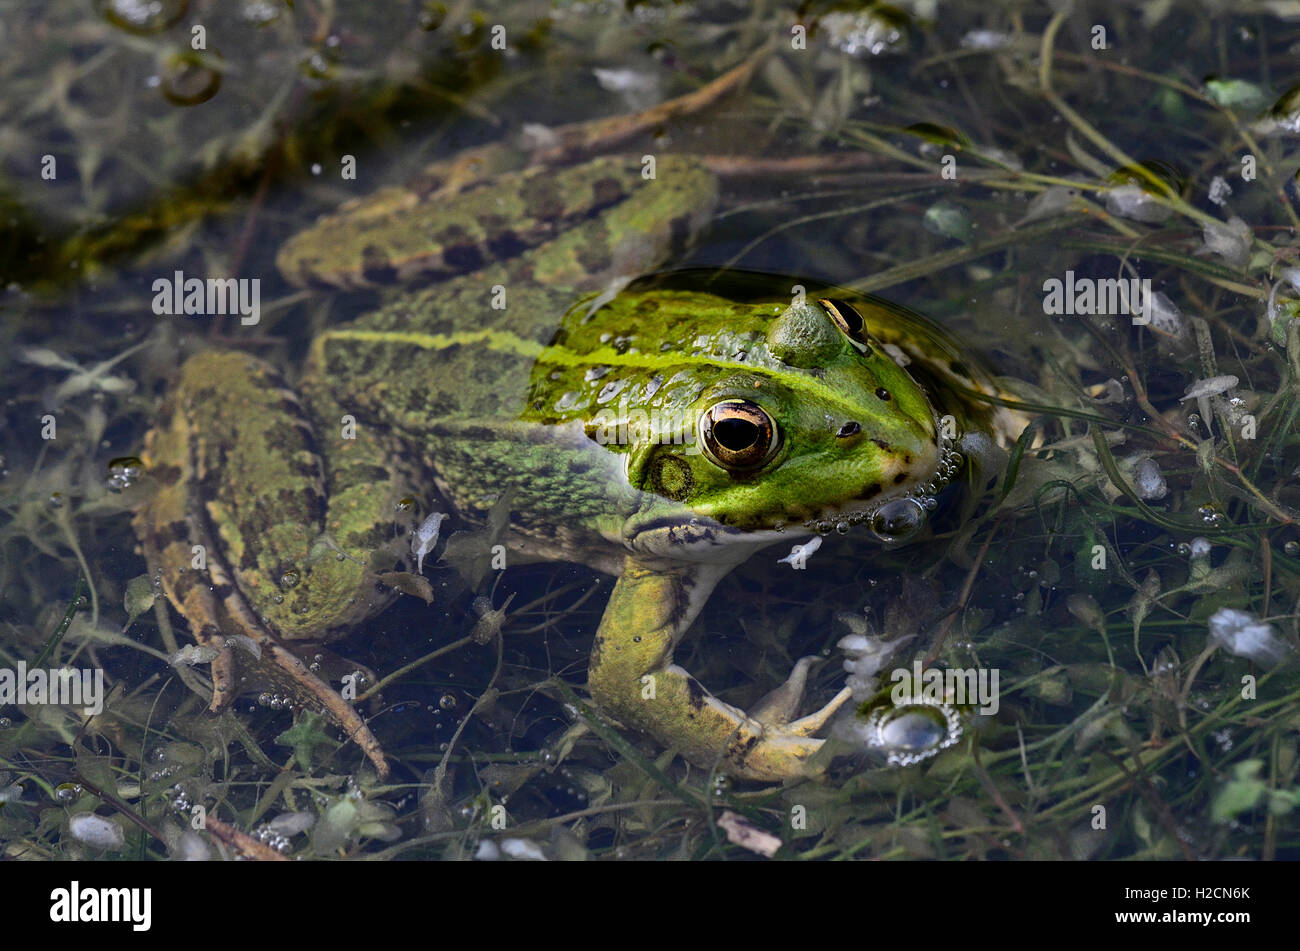 A marsh frog in water UK Stock Photo